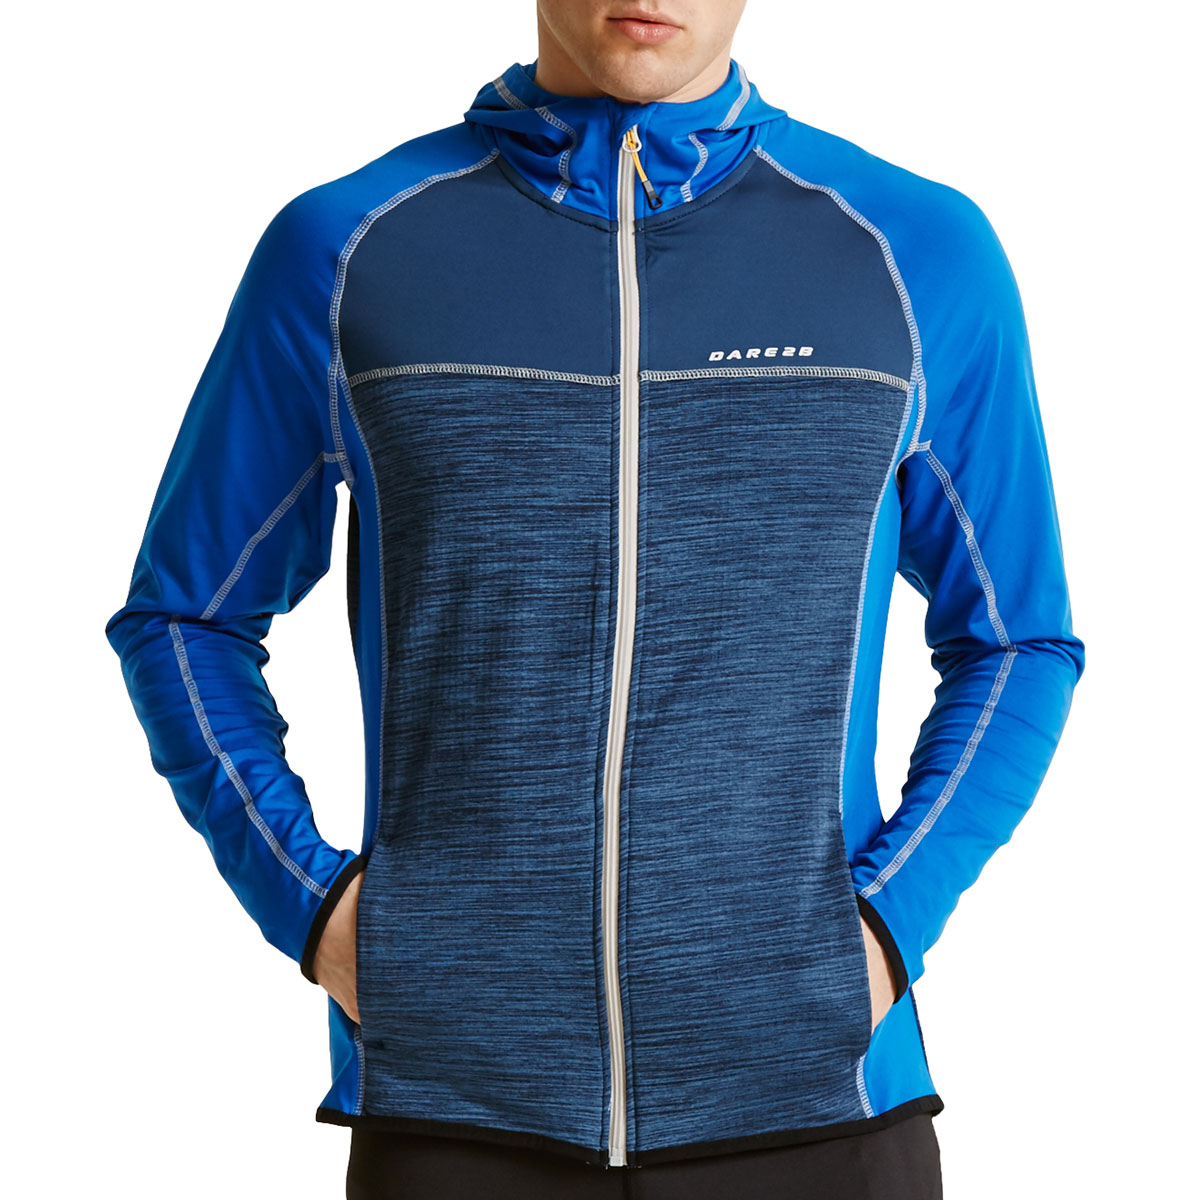 Dare 2b Mens Ratify II Core Stretch Hooded Zip Jacket Top 62/% OFF RRP